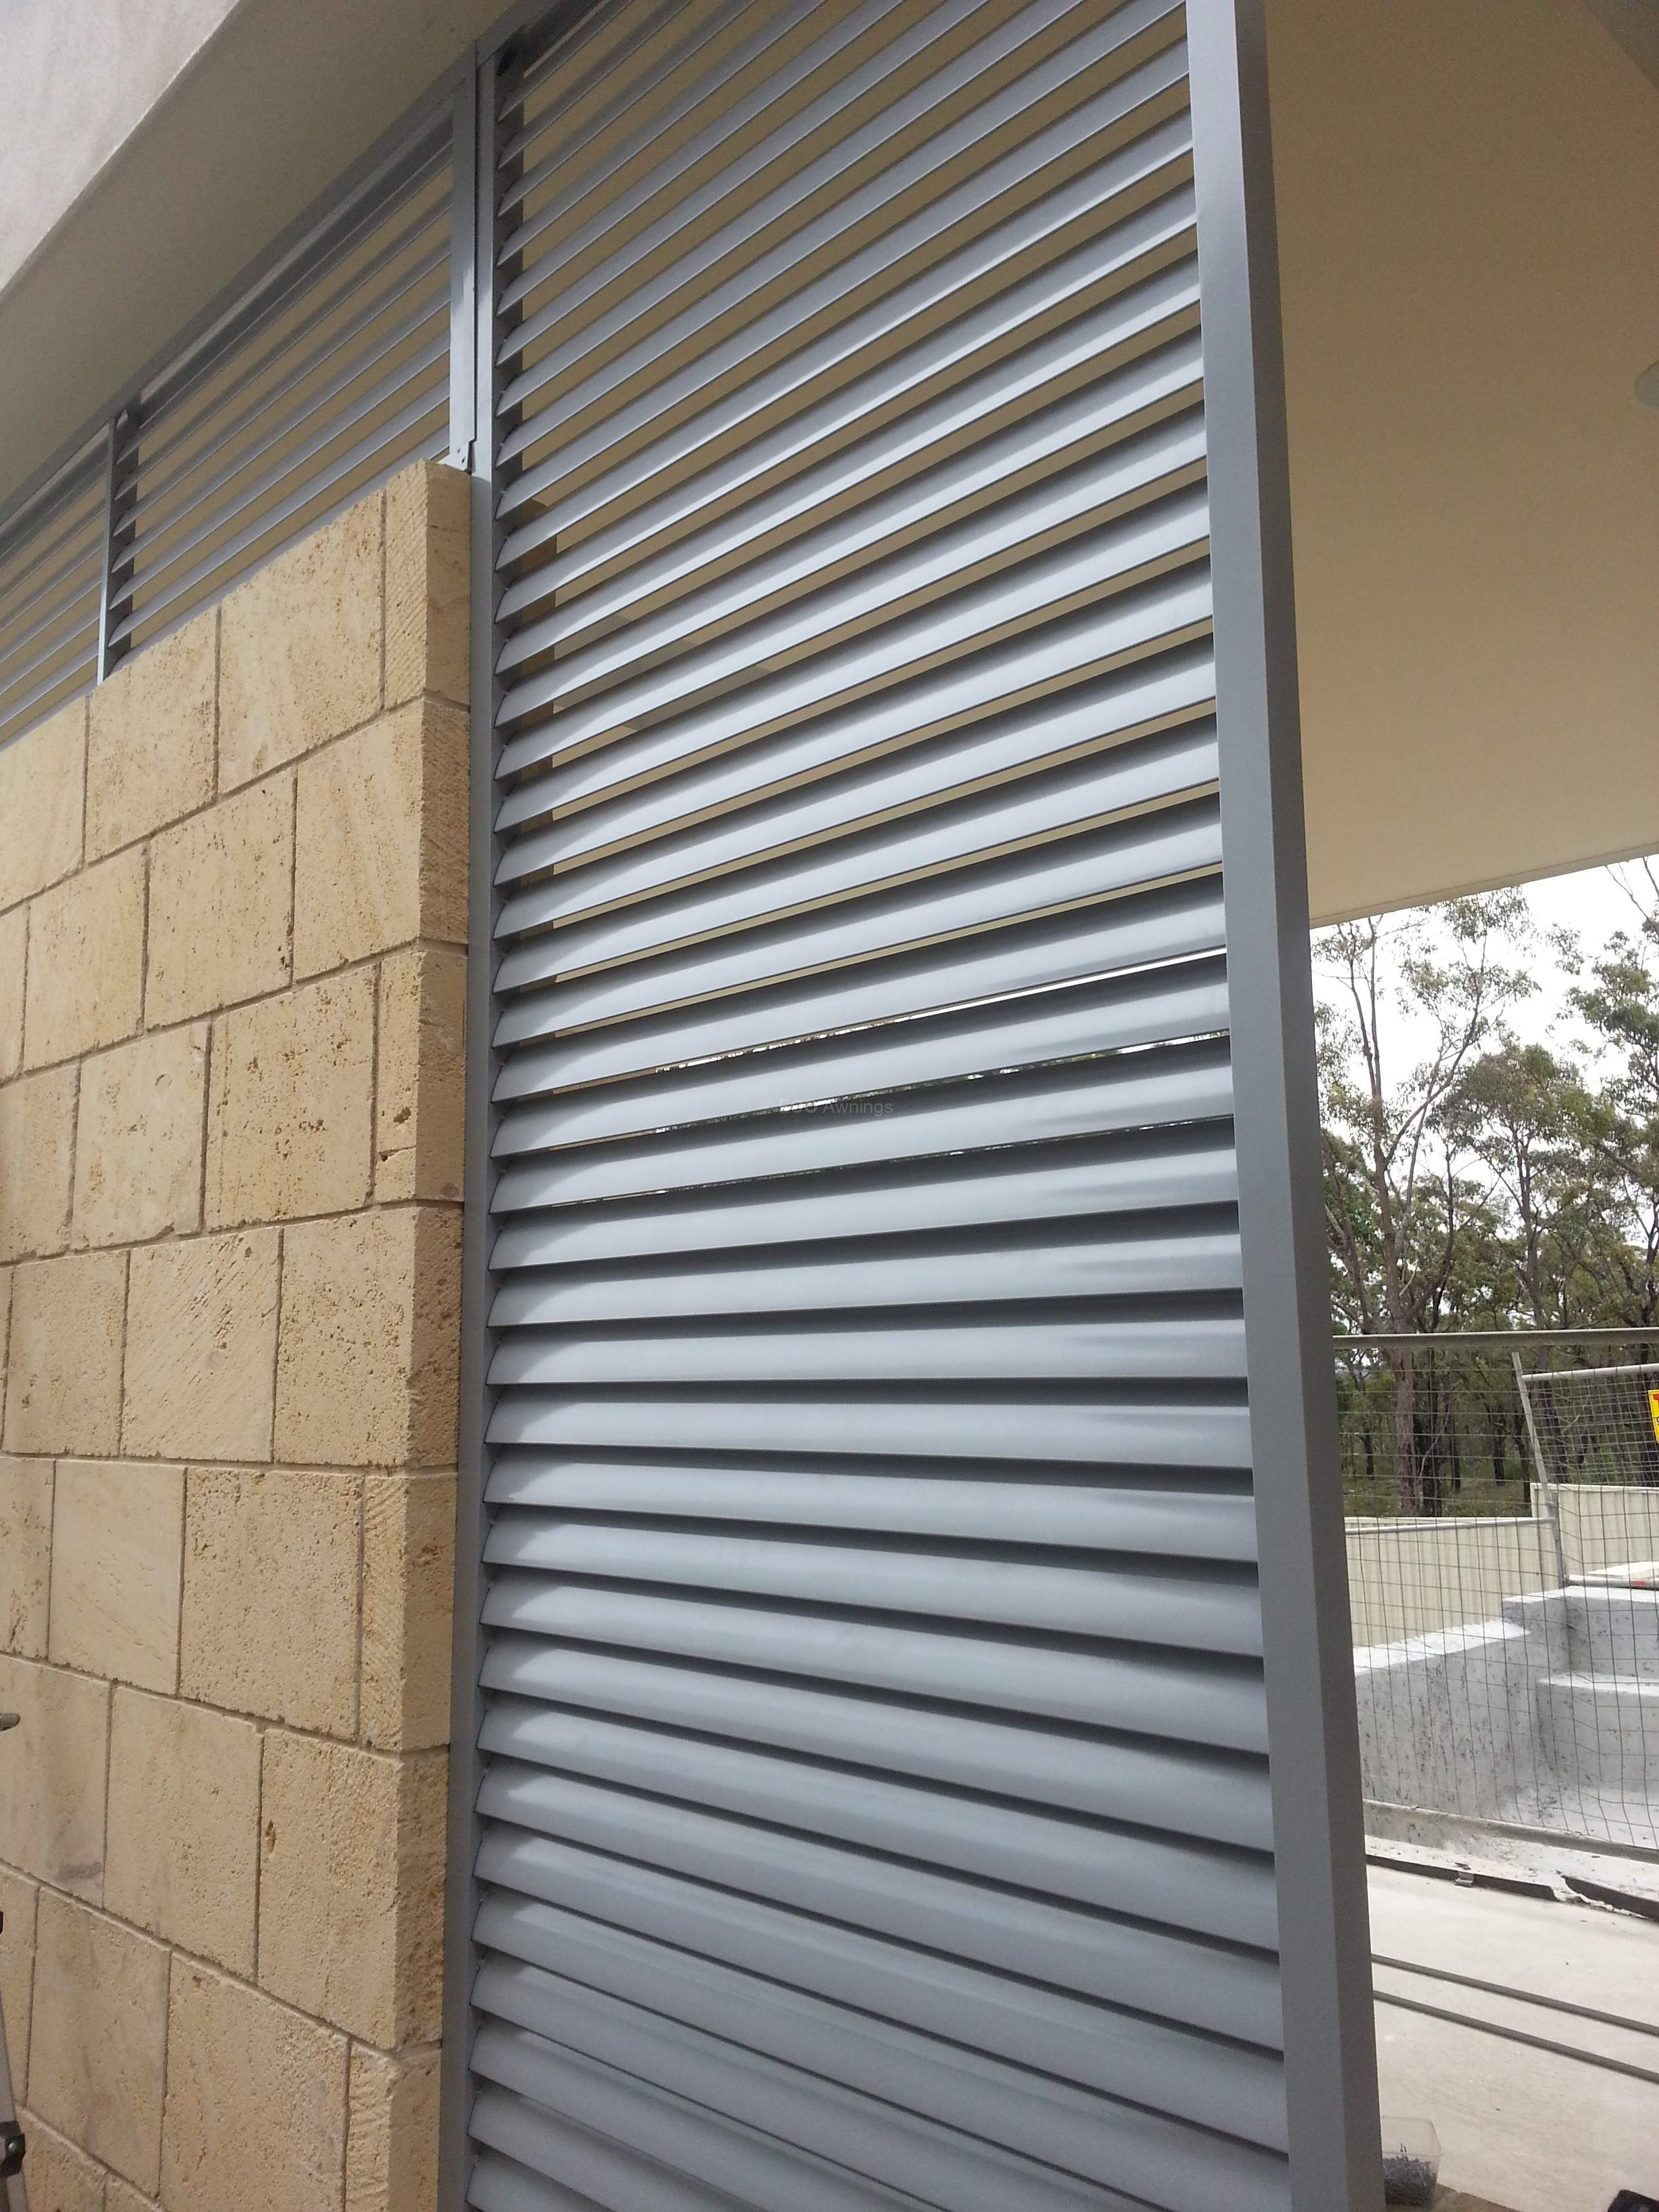 Louver Screen Wall : Privacy screen louvers with fixed welded in a